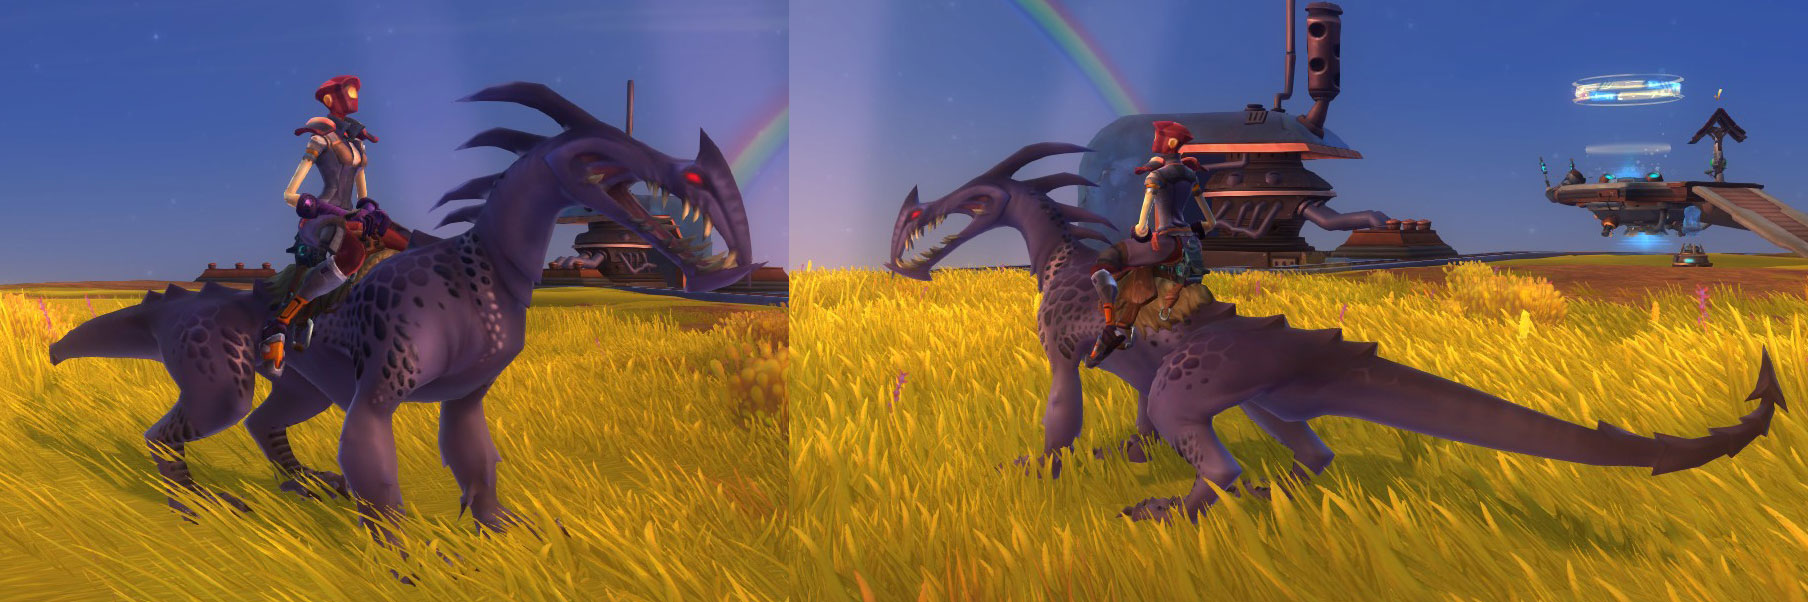 WildStar trask mount